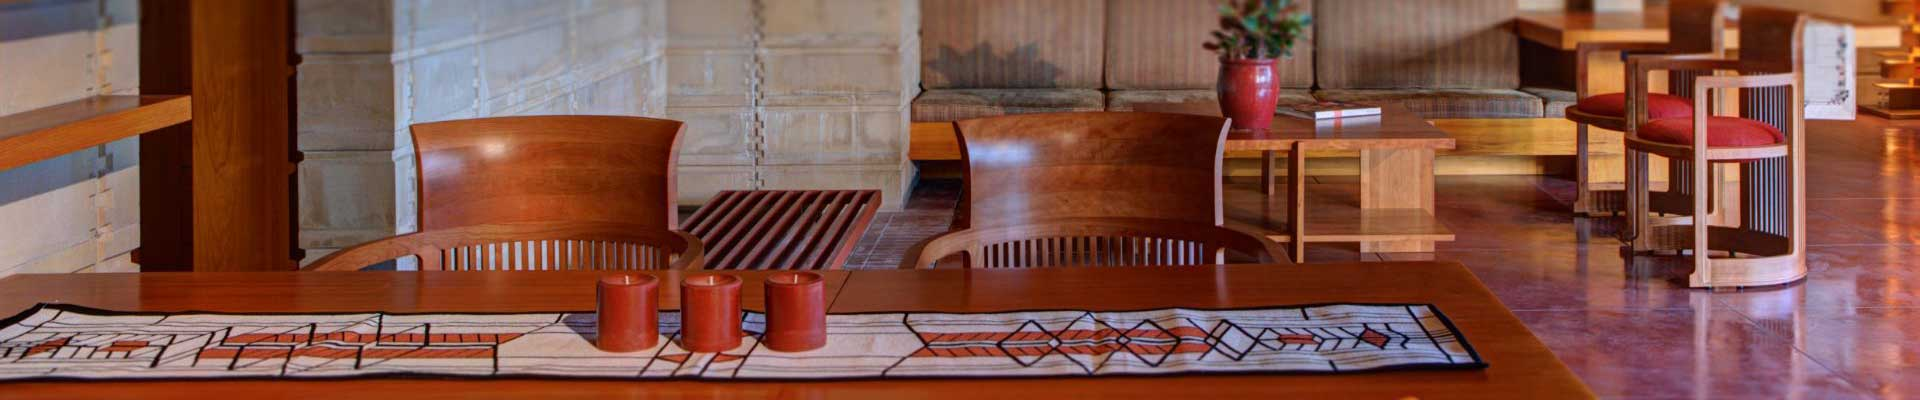 inside the usonian house